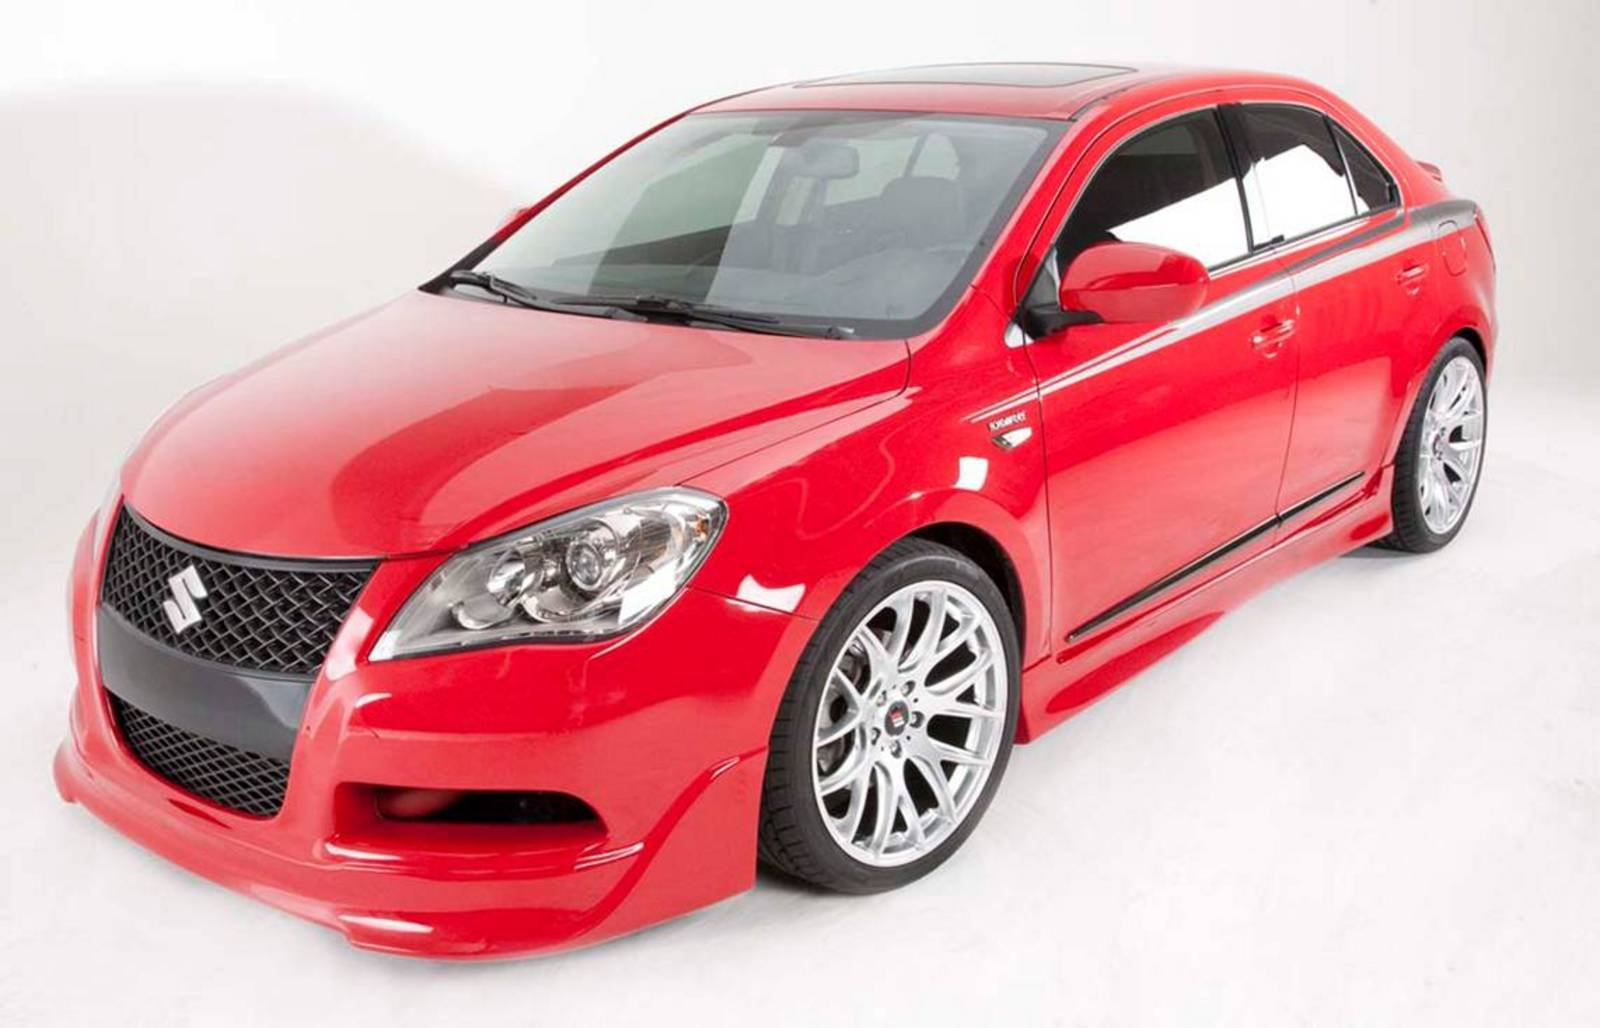 2010 suzuki kizashi platinum edition by rrm review top speed. Black Bedroom Furniture Sets. Home Design Ideas